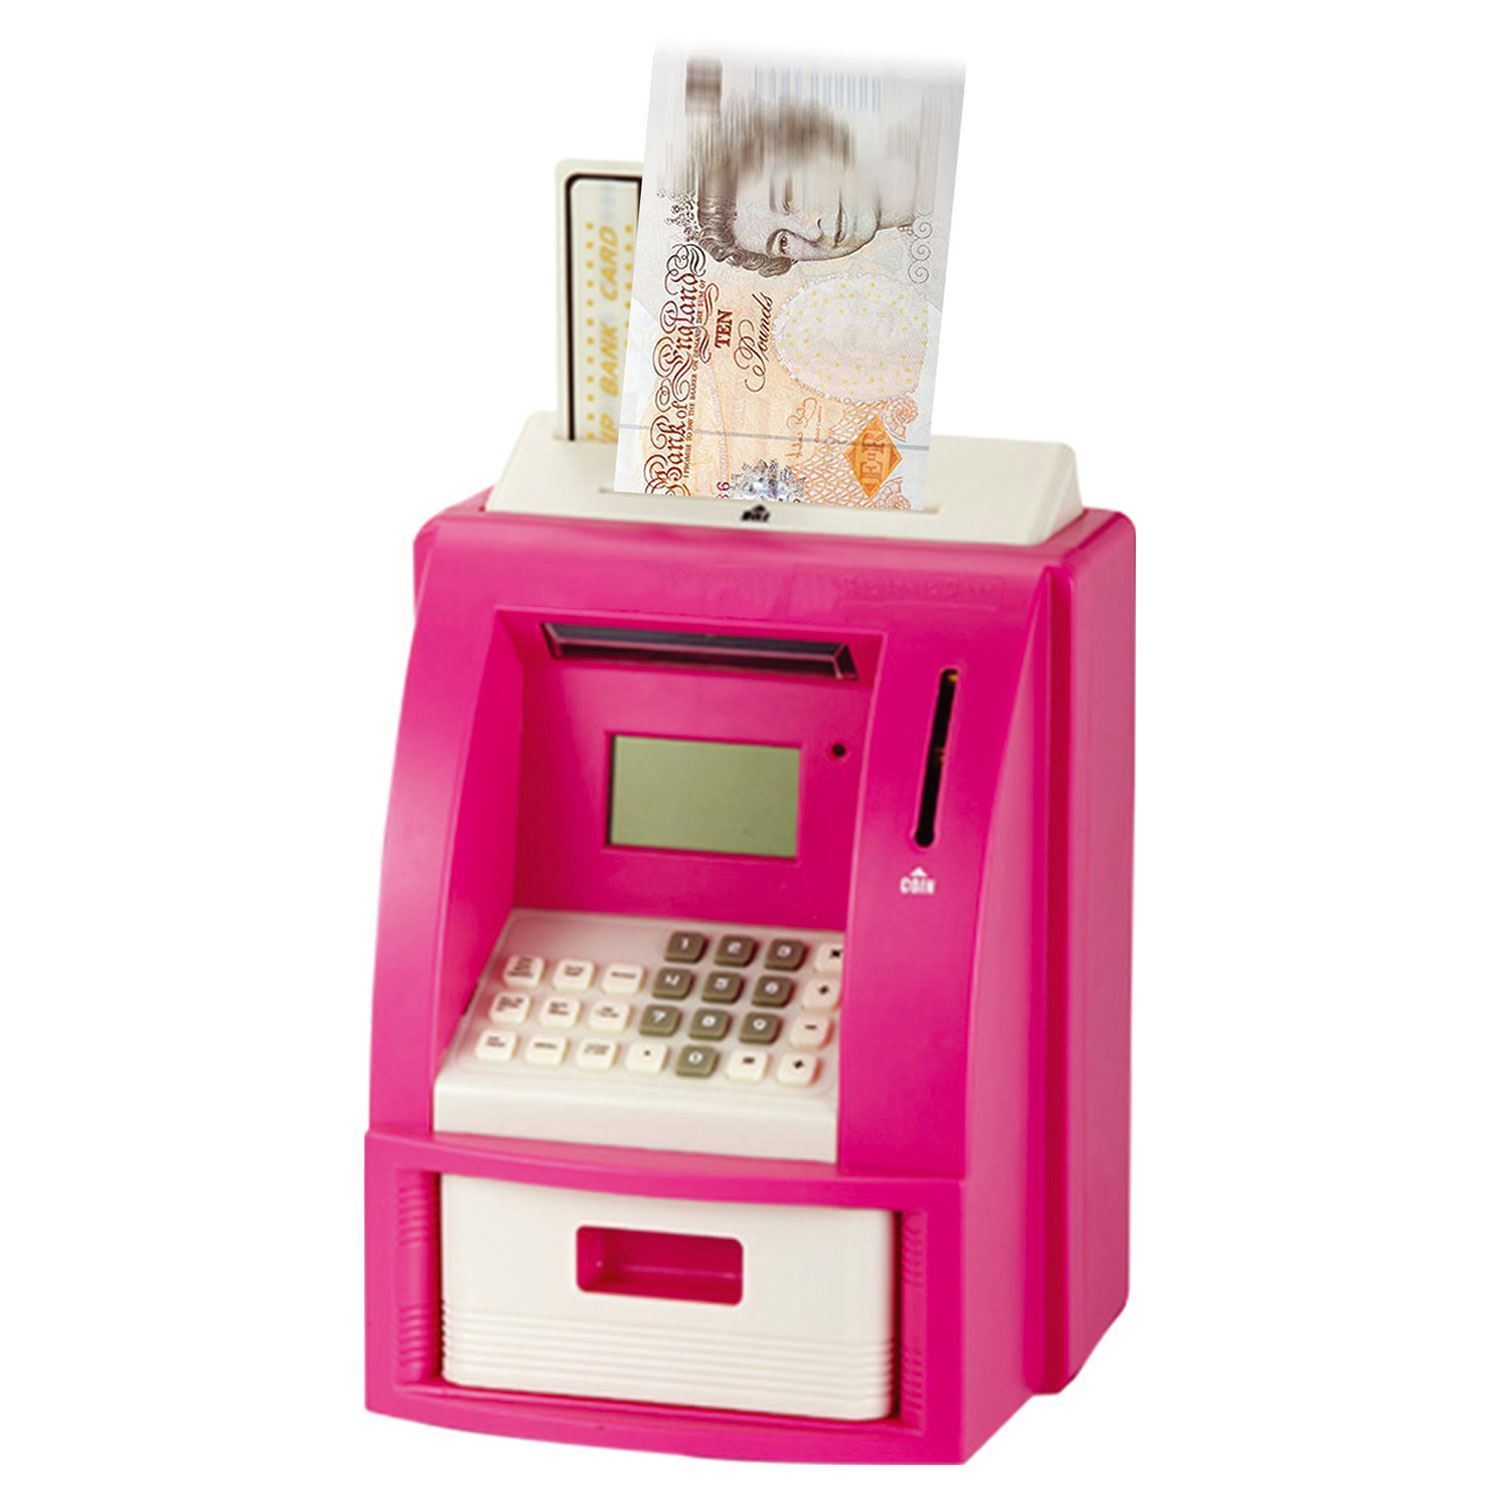 Piggy Bank With Counter Digital Piggy Bank Atm Machine Card Money Note Coin Saving